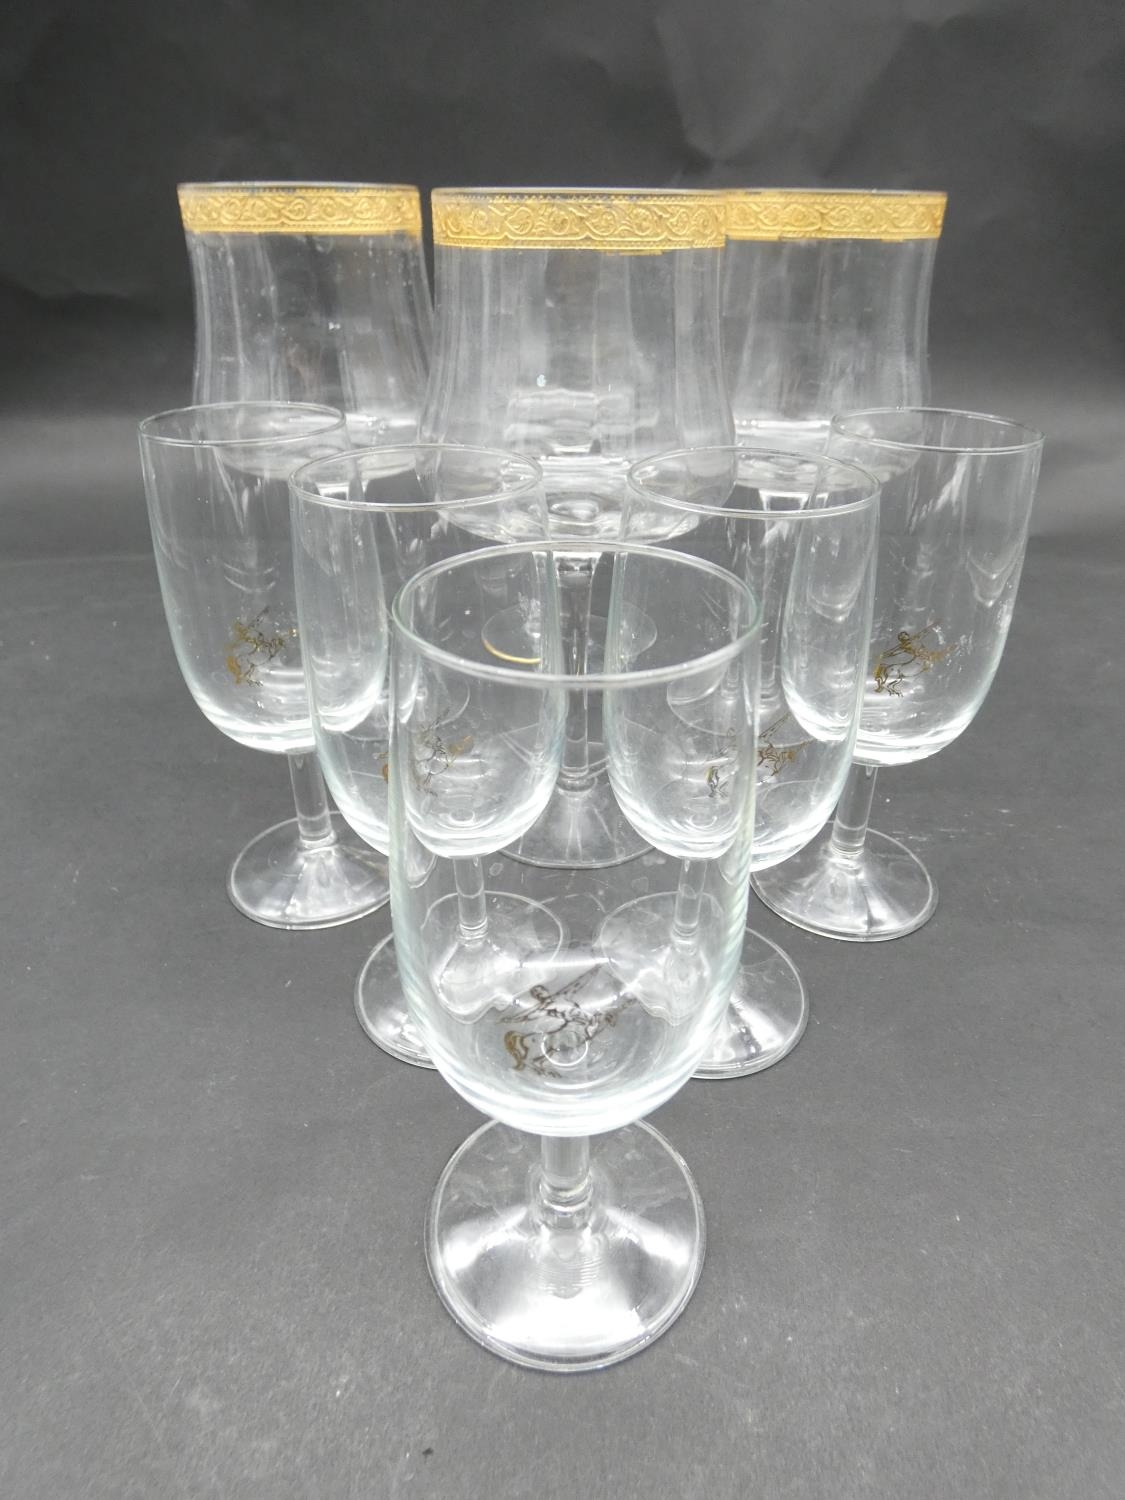 A collection of glasses. Including a set of five sherry glasses with gilded Orion symbols, along - Image 3 of 14